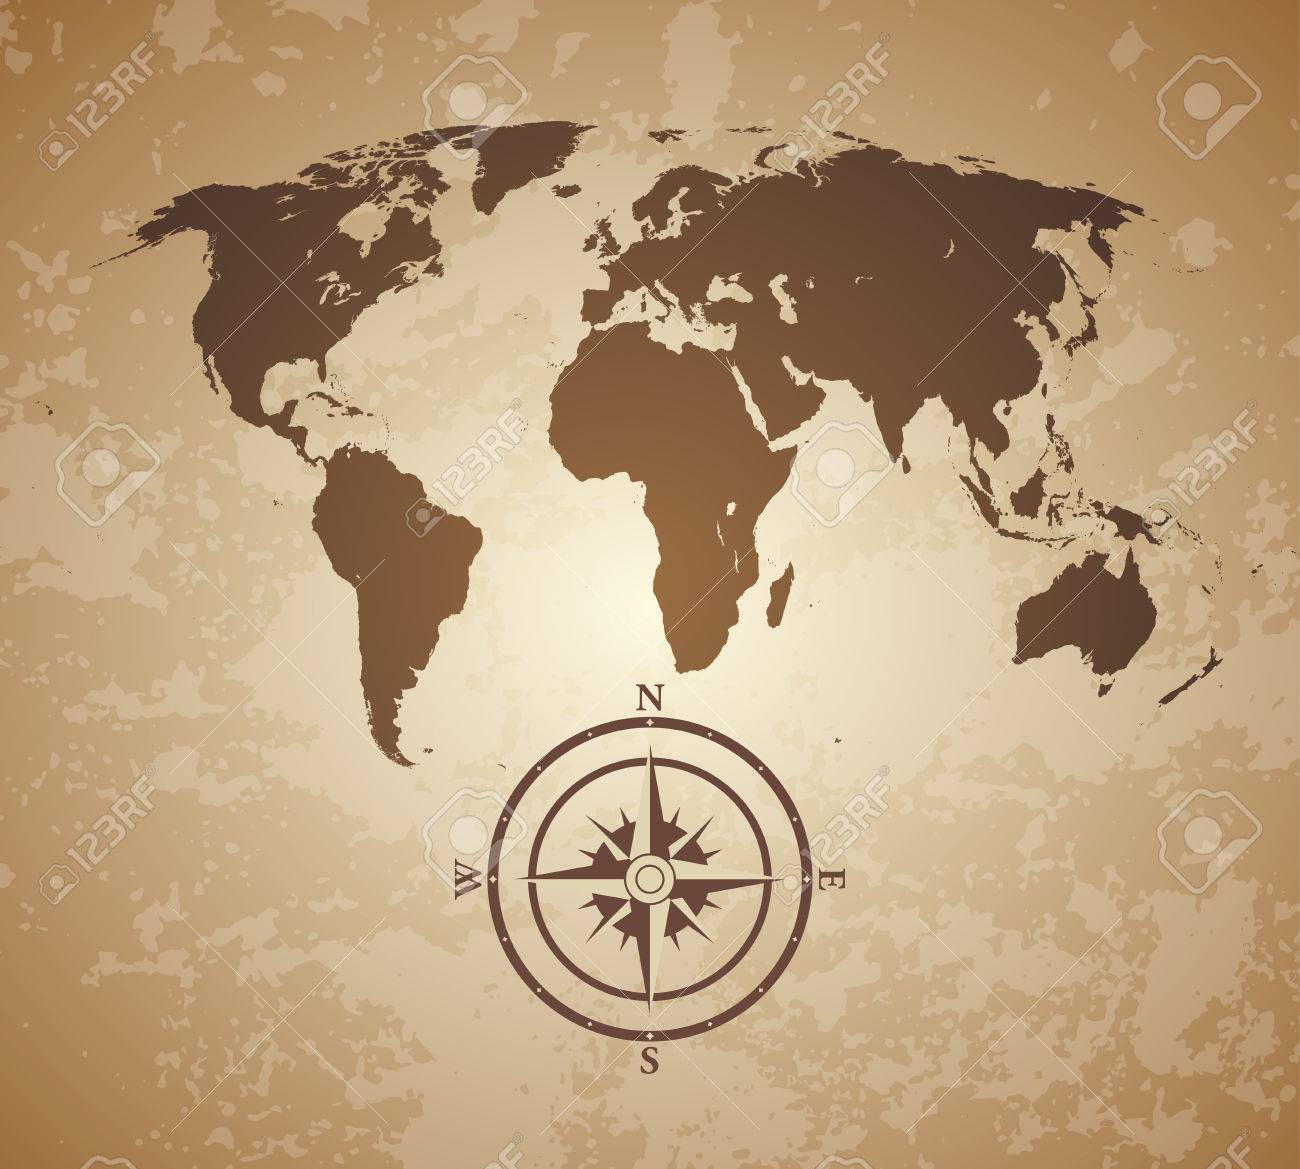 World Map Old Style.Vintage Old Style World Map With Compas Royalty Free Cliparts